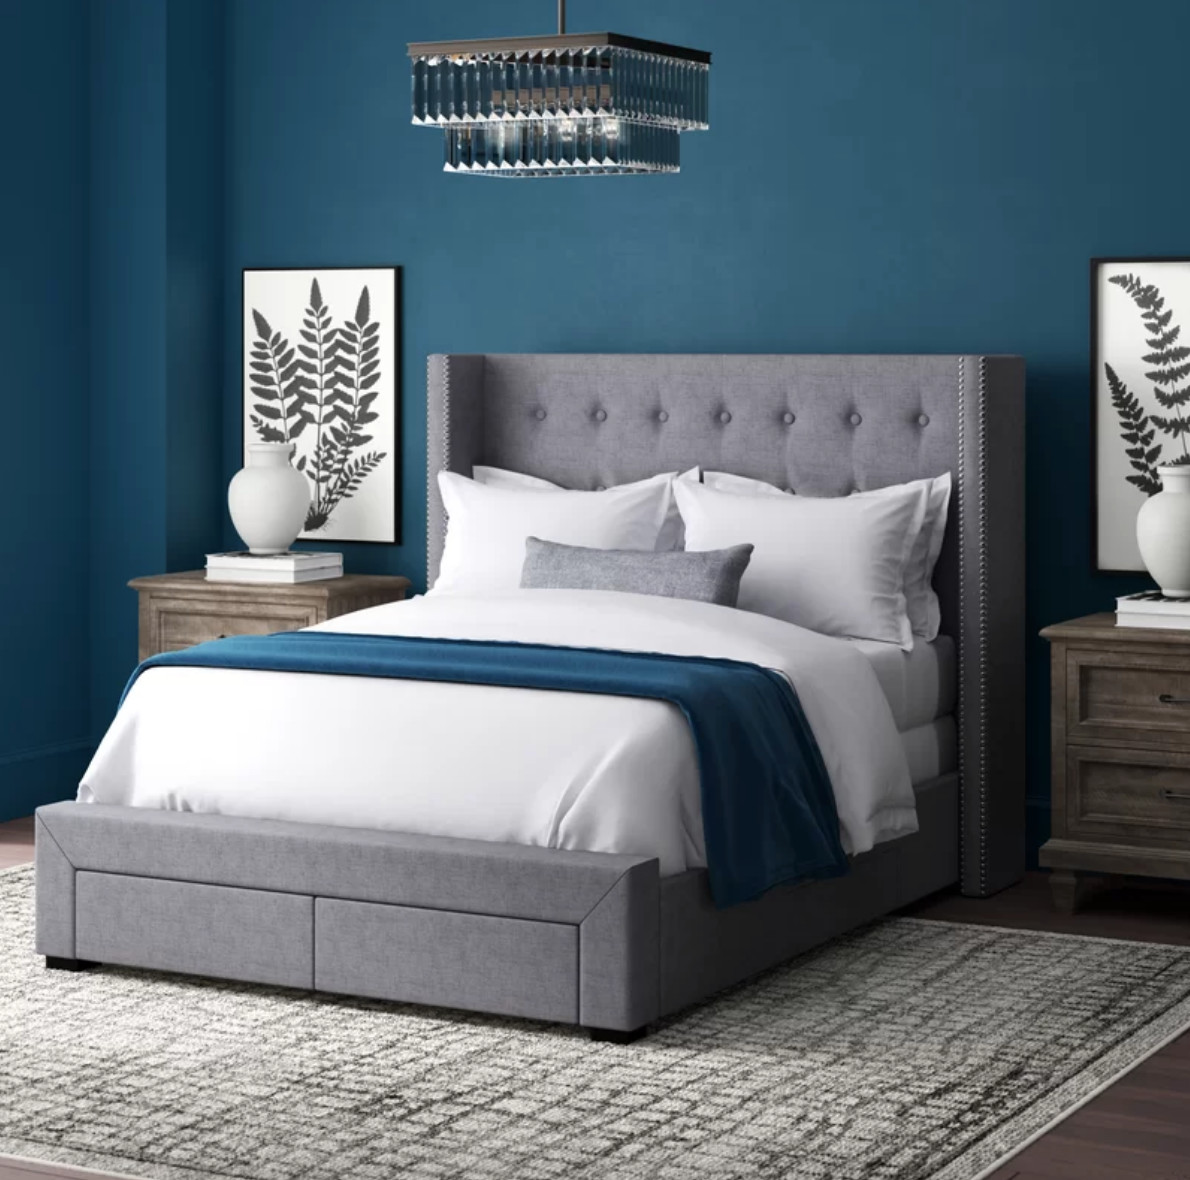 The Best Affordable Bedroom Sets For Every Style